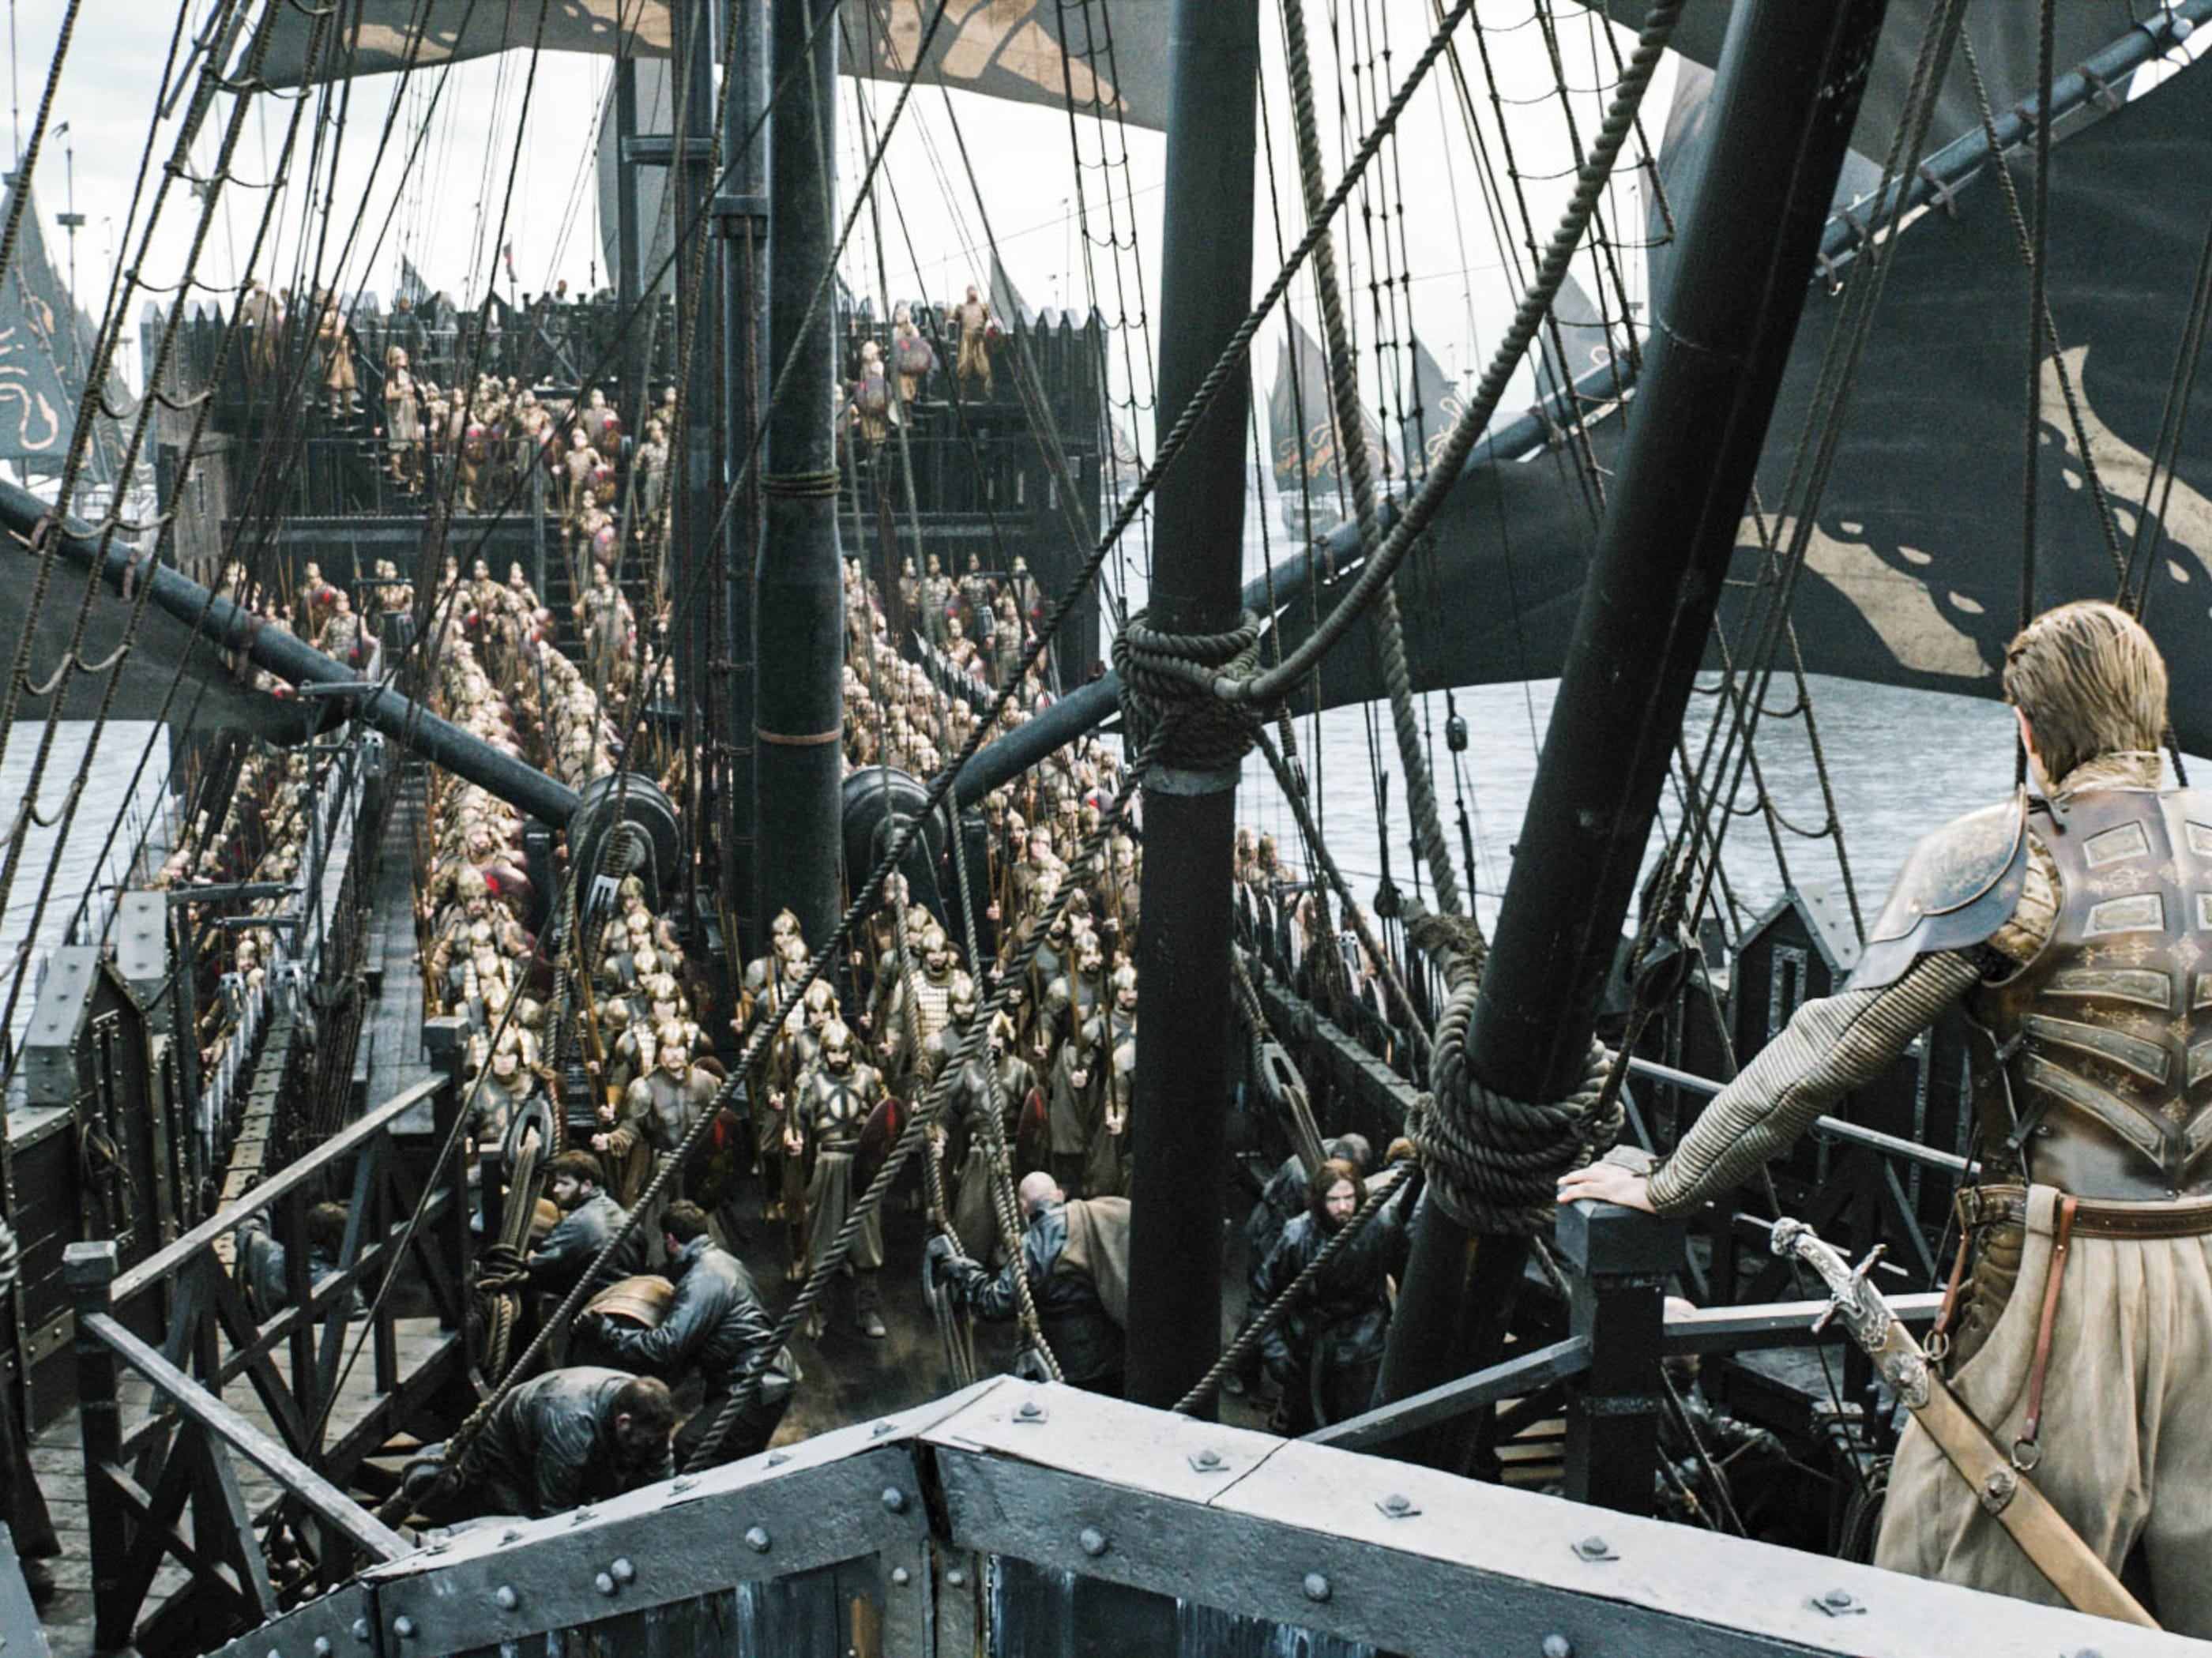 Troops arrive at King's Landing